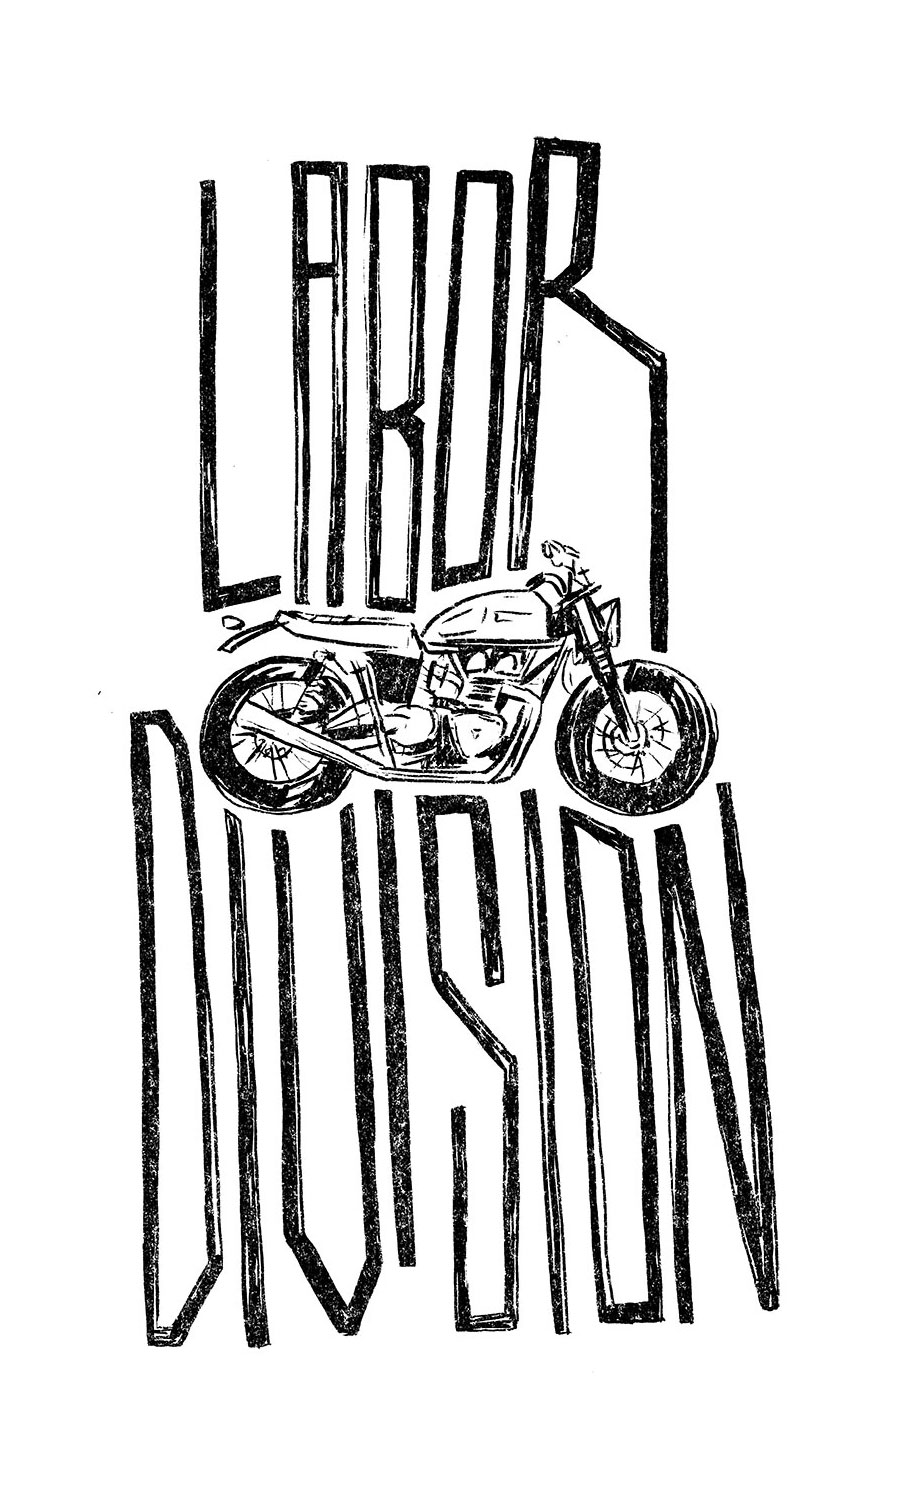 ld-motorcycle1-fin-bw1